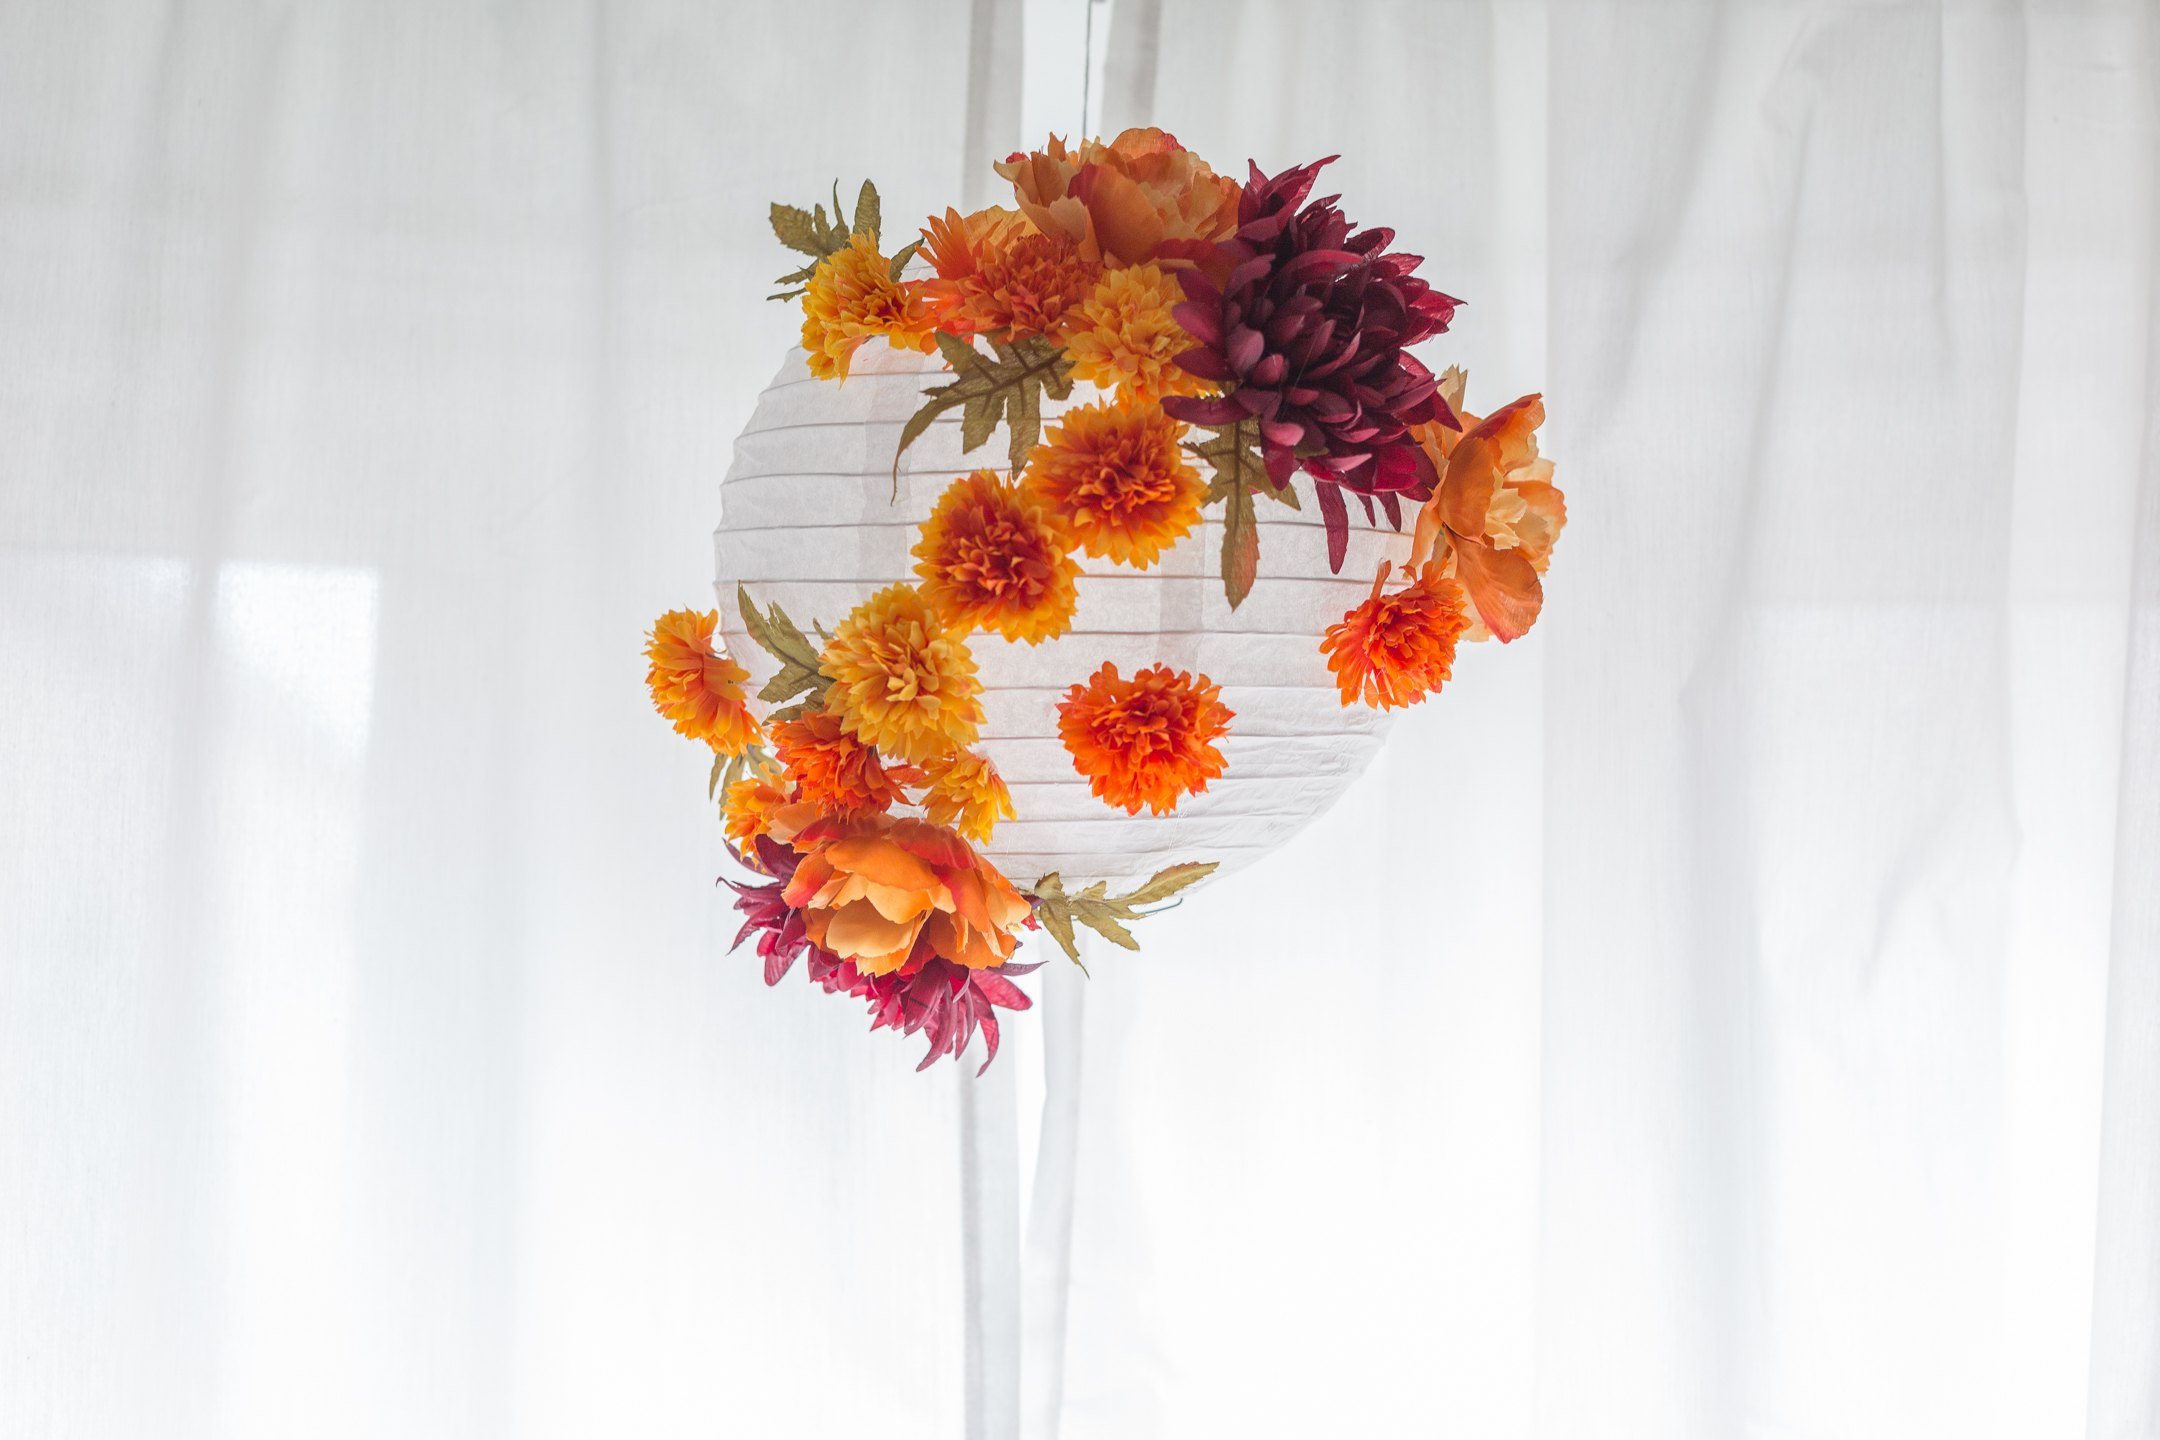 Ehow how to discover the expert in you - Fall Inspired Paper Lantern Tutorial